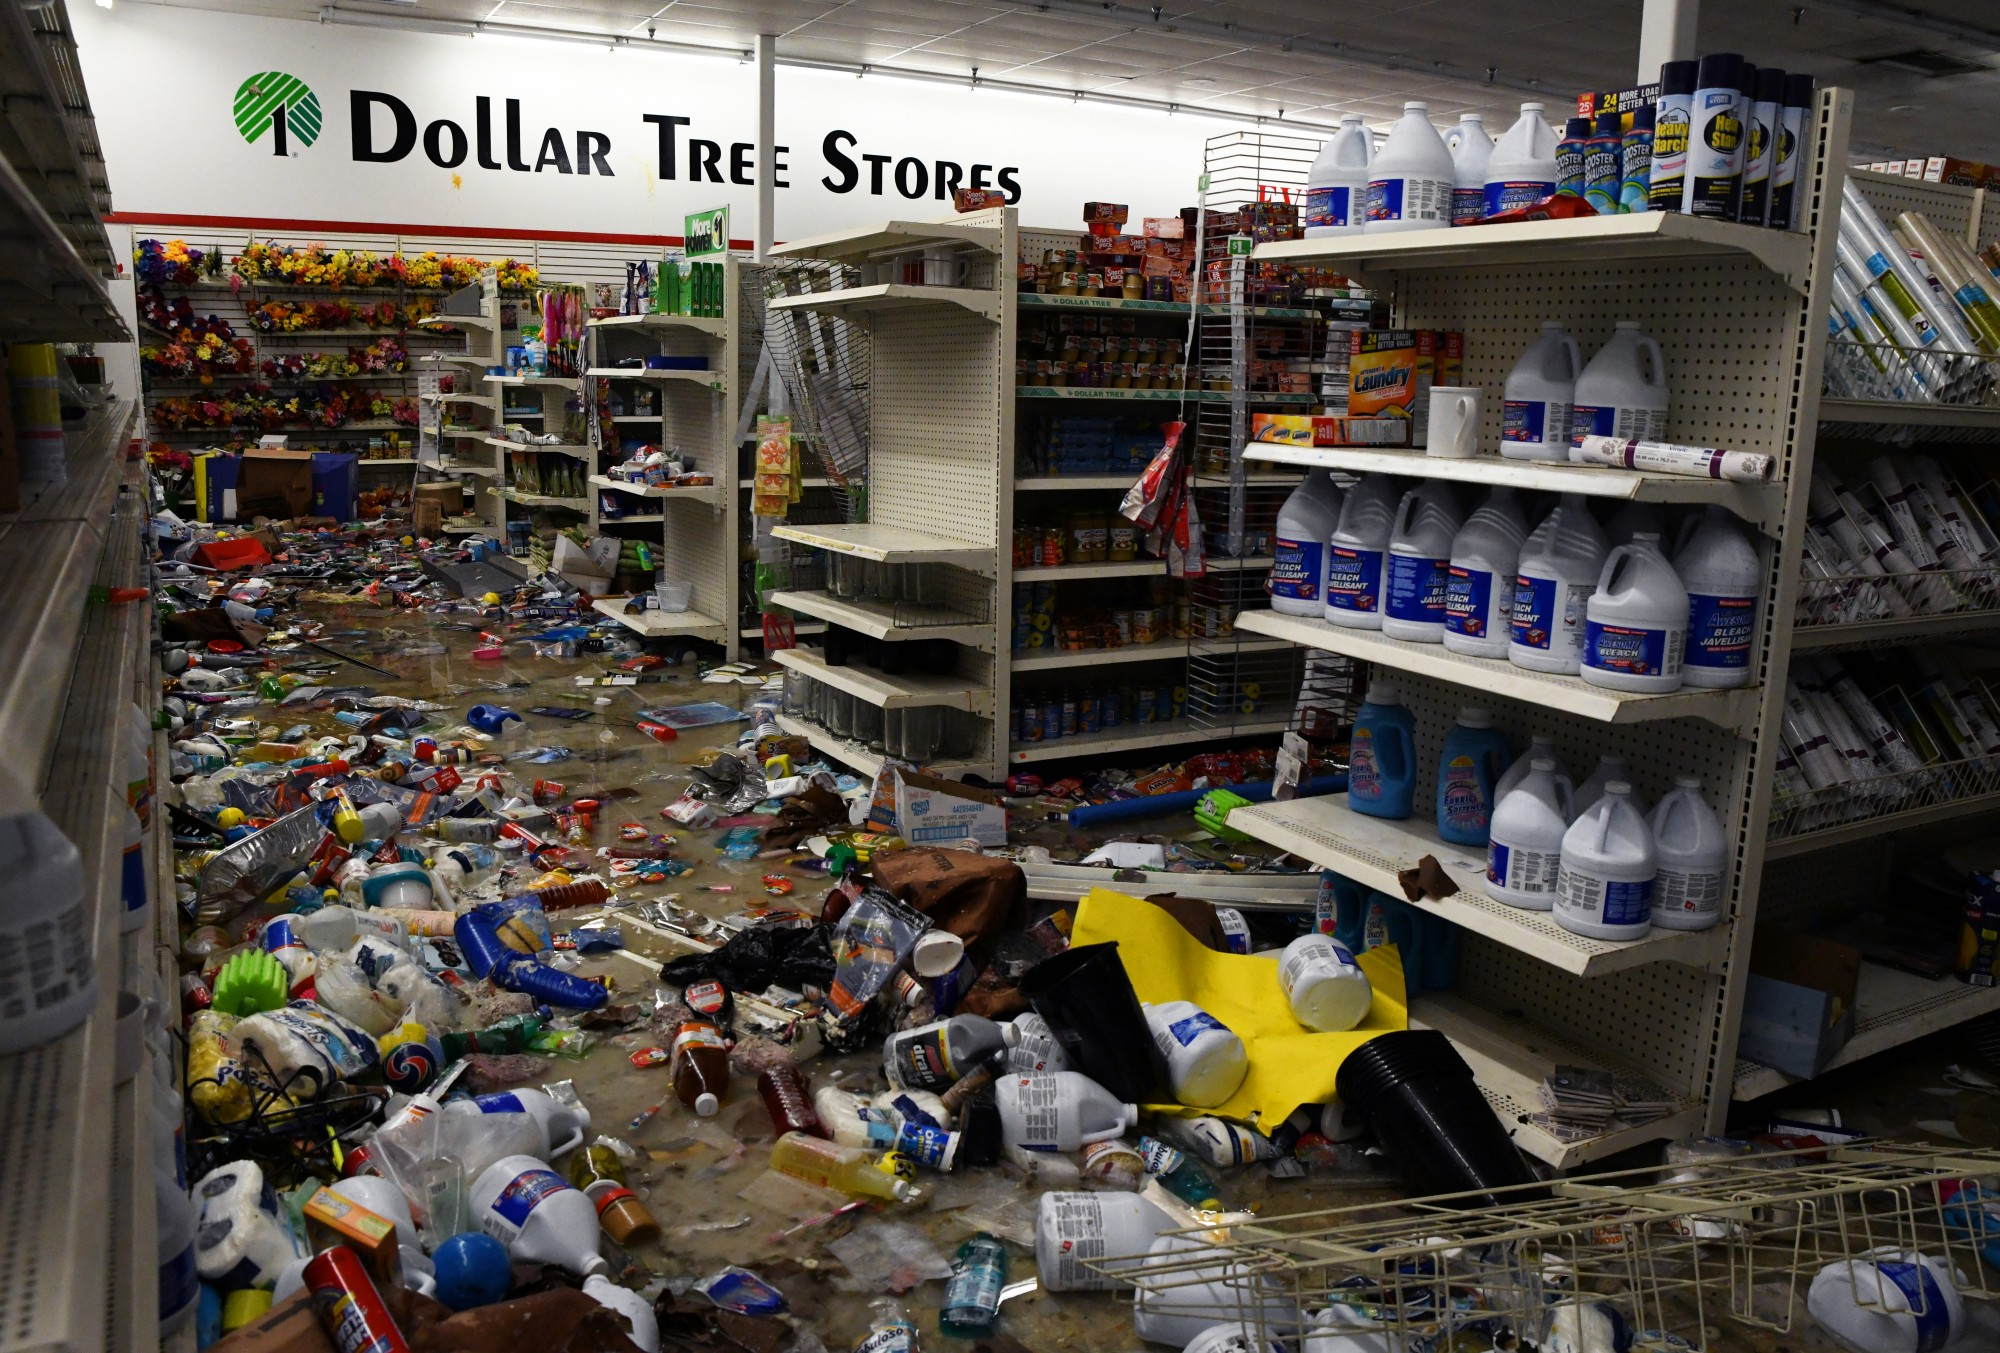 The interior of the Dollar Tree on E Lake Street in Minneapolis on Friday, May 29.